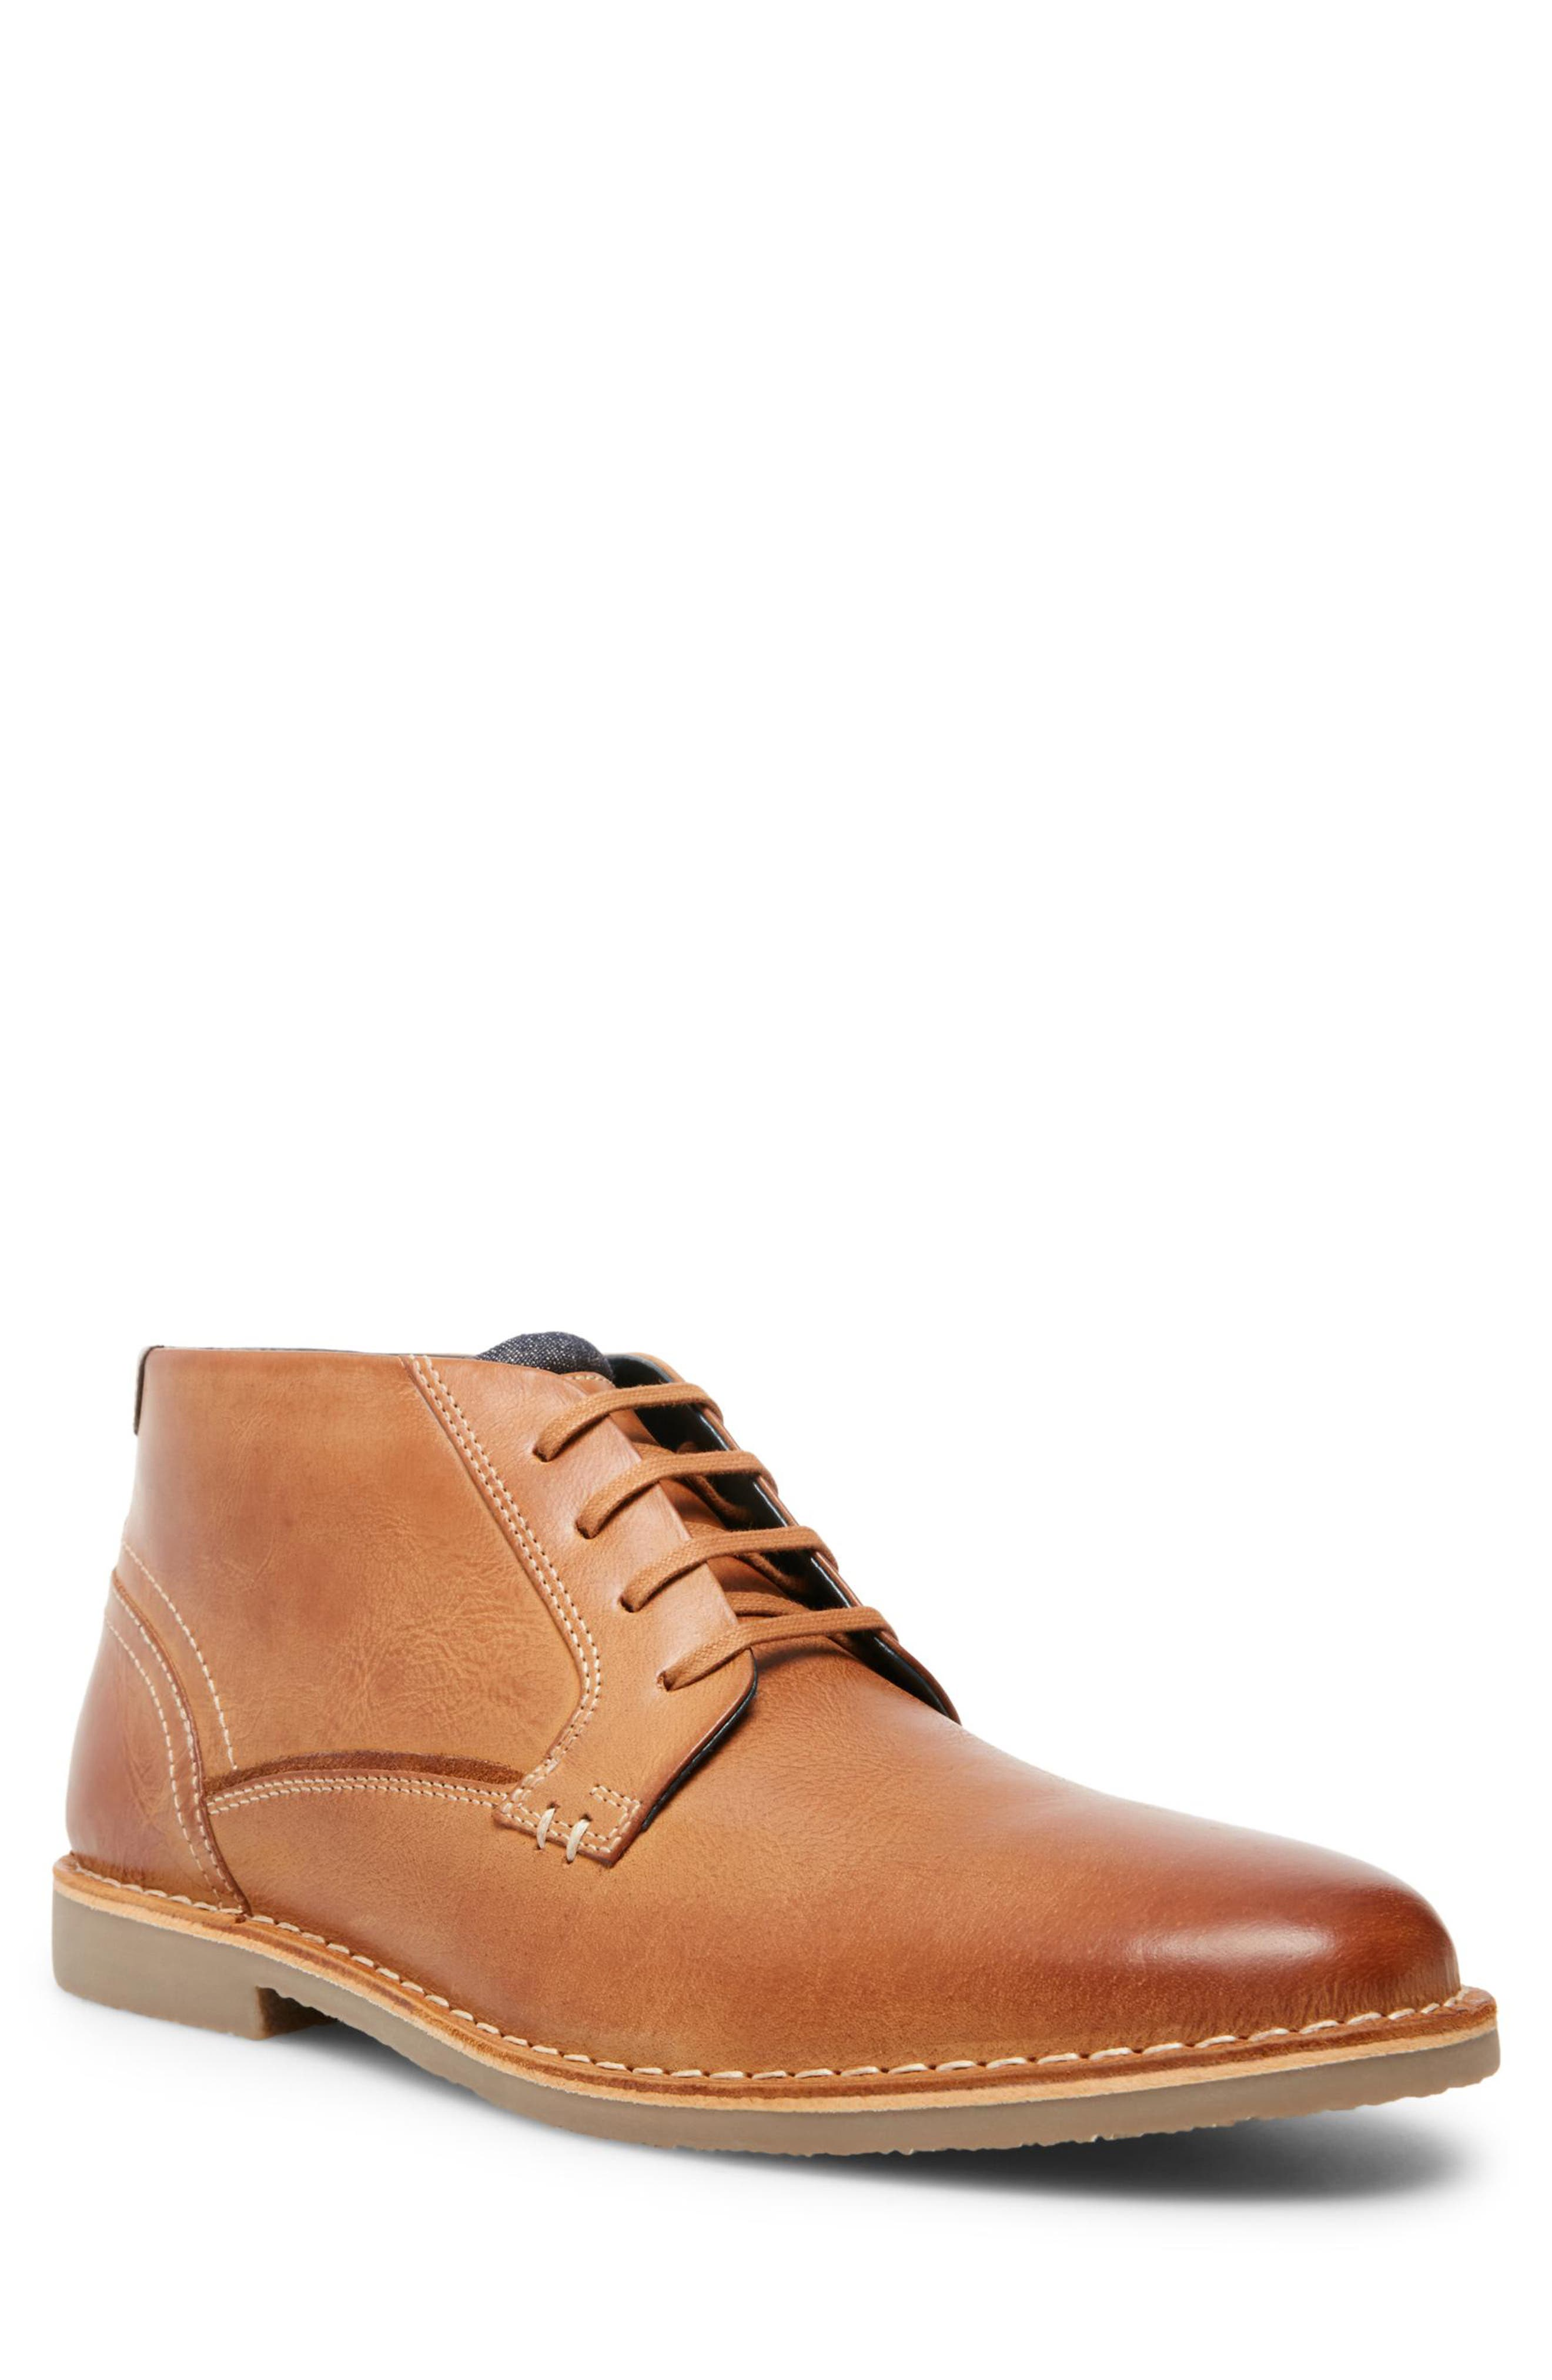 Steve Madden Gadrick Chukka Boot- Brown